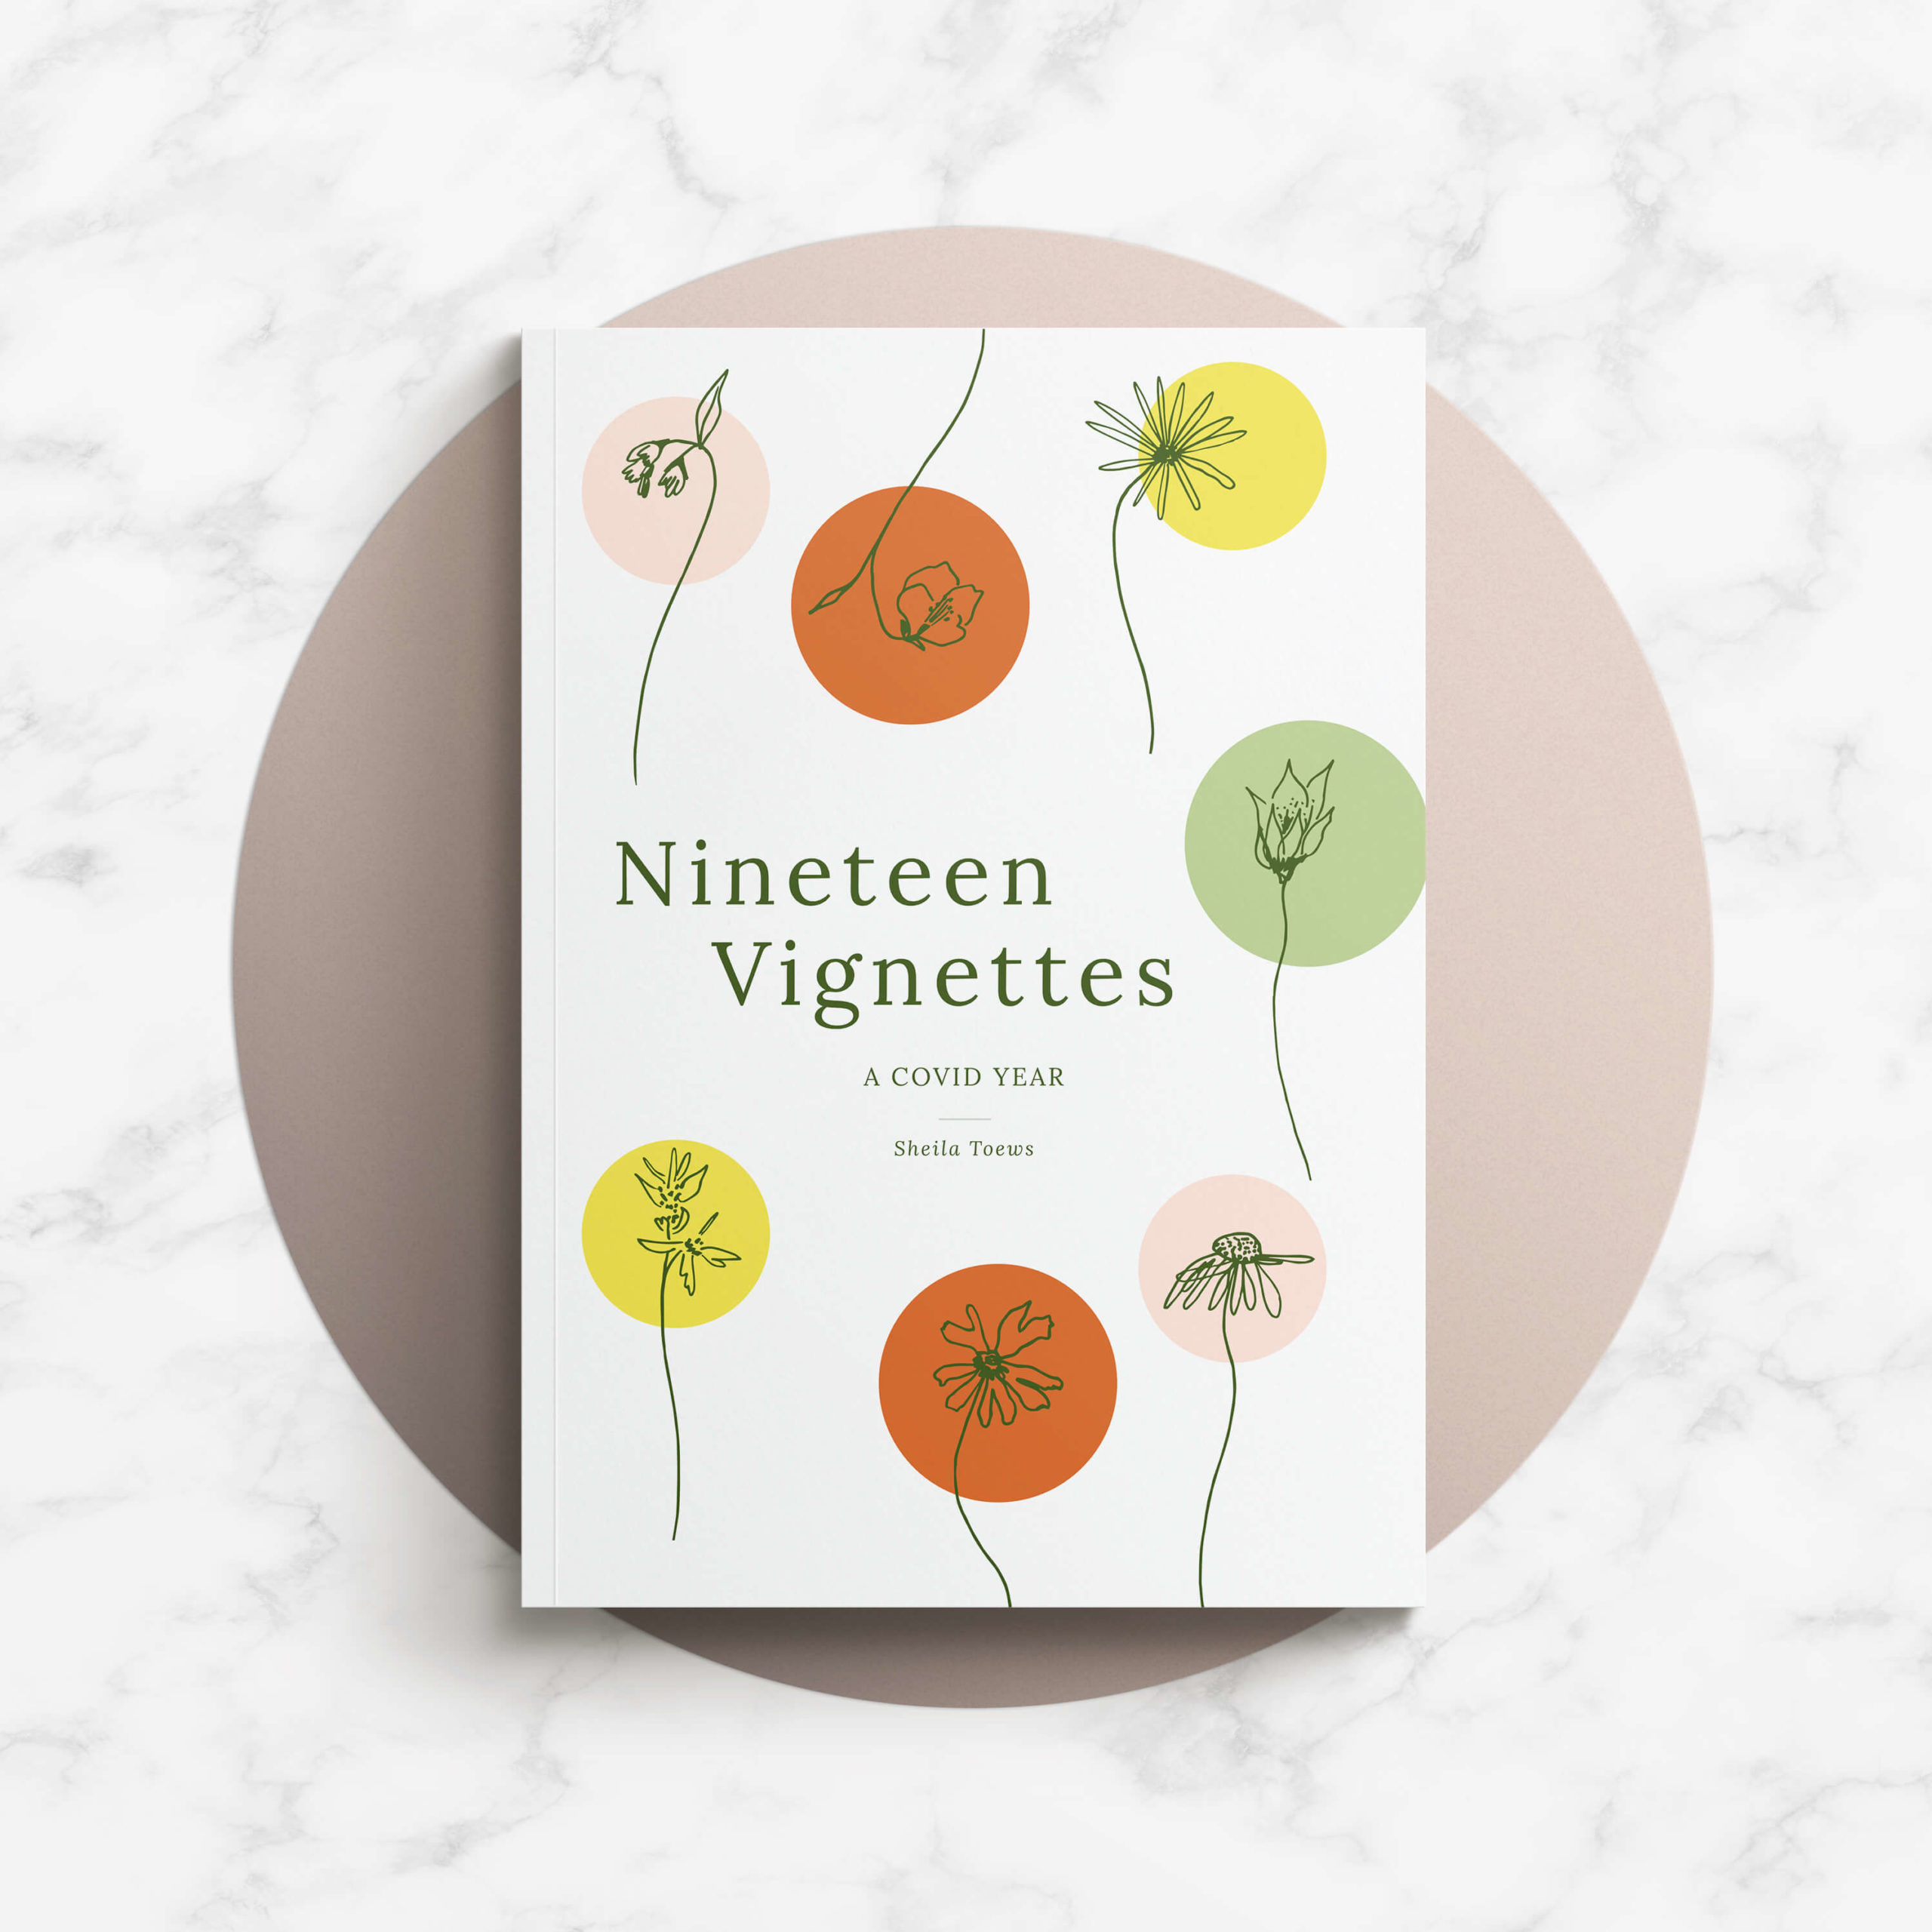 Book cover design featuring Manitoba wildflowers